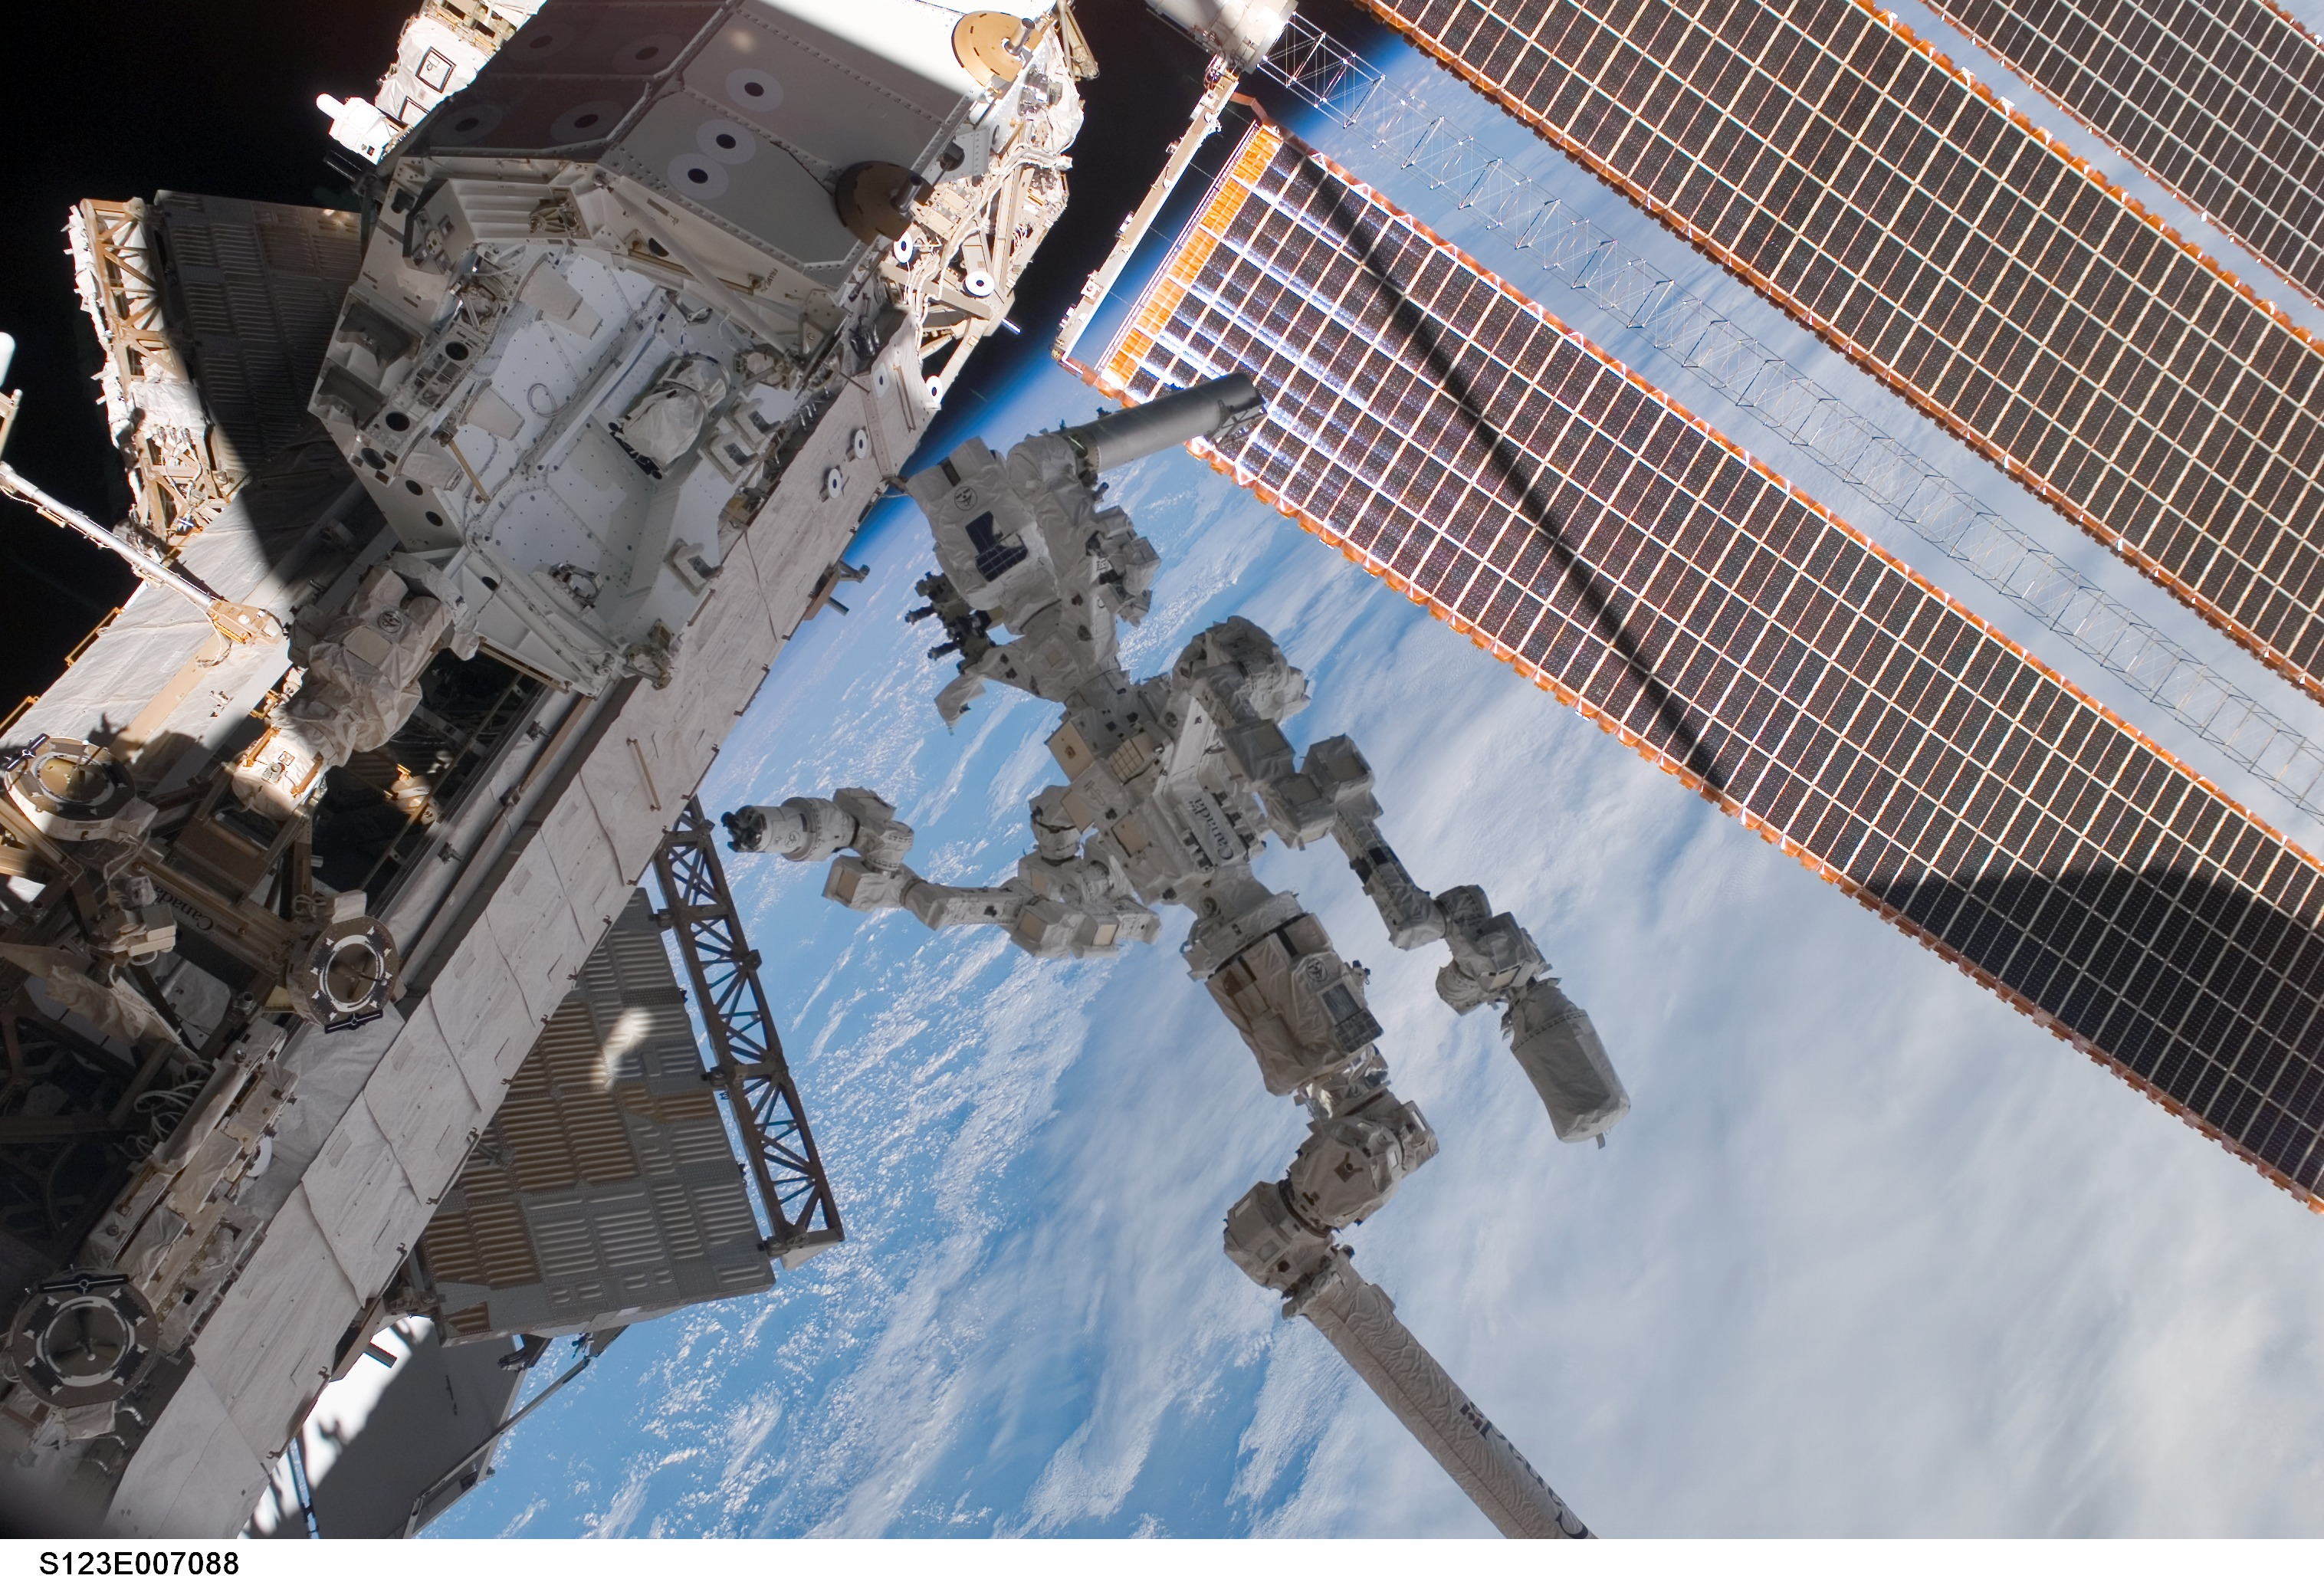 nasa space station robot - photo #6